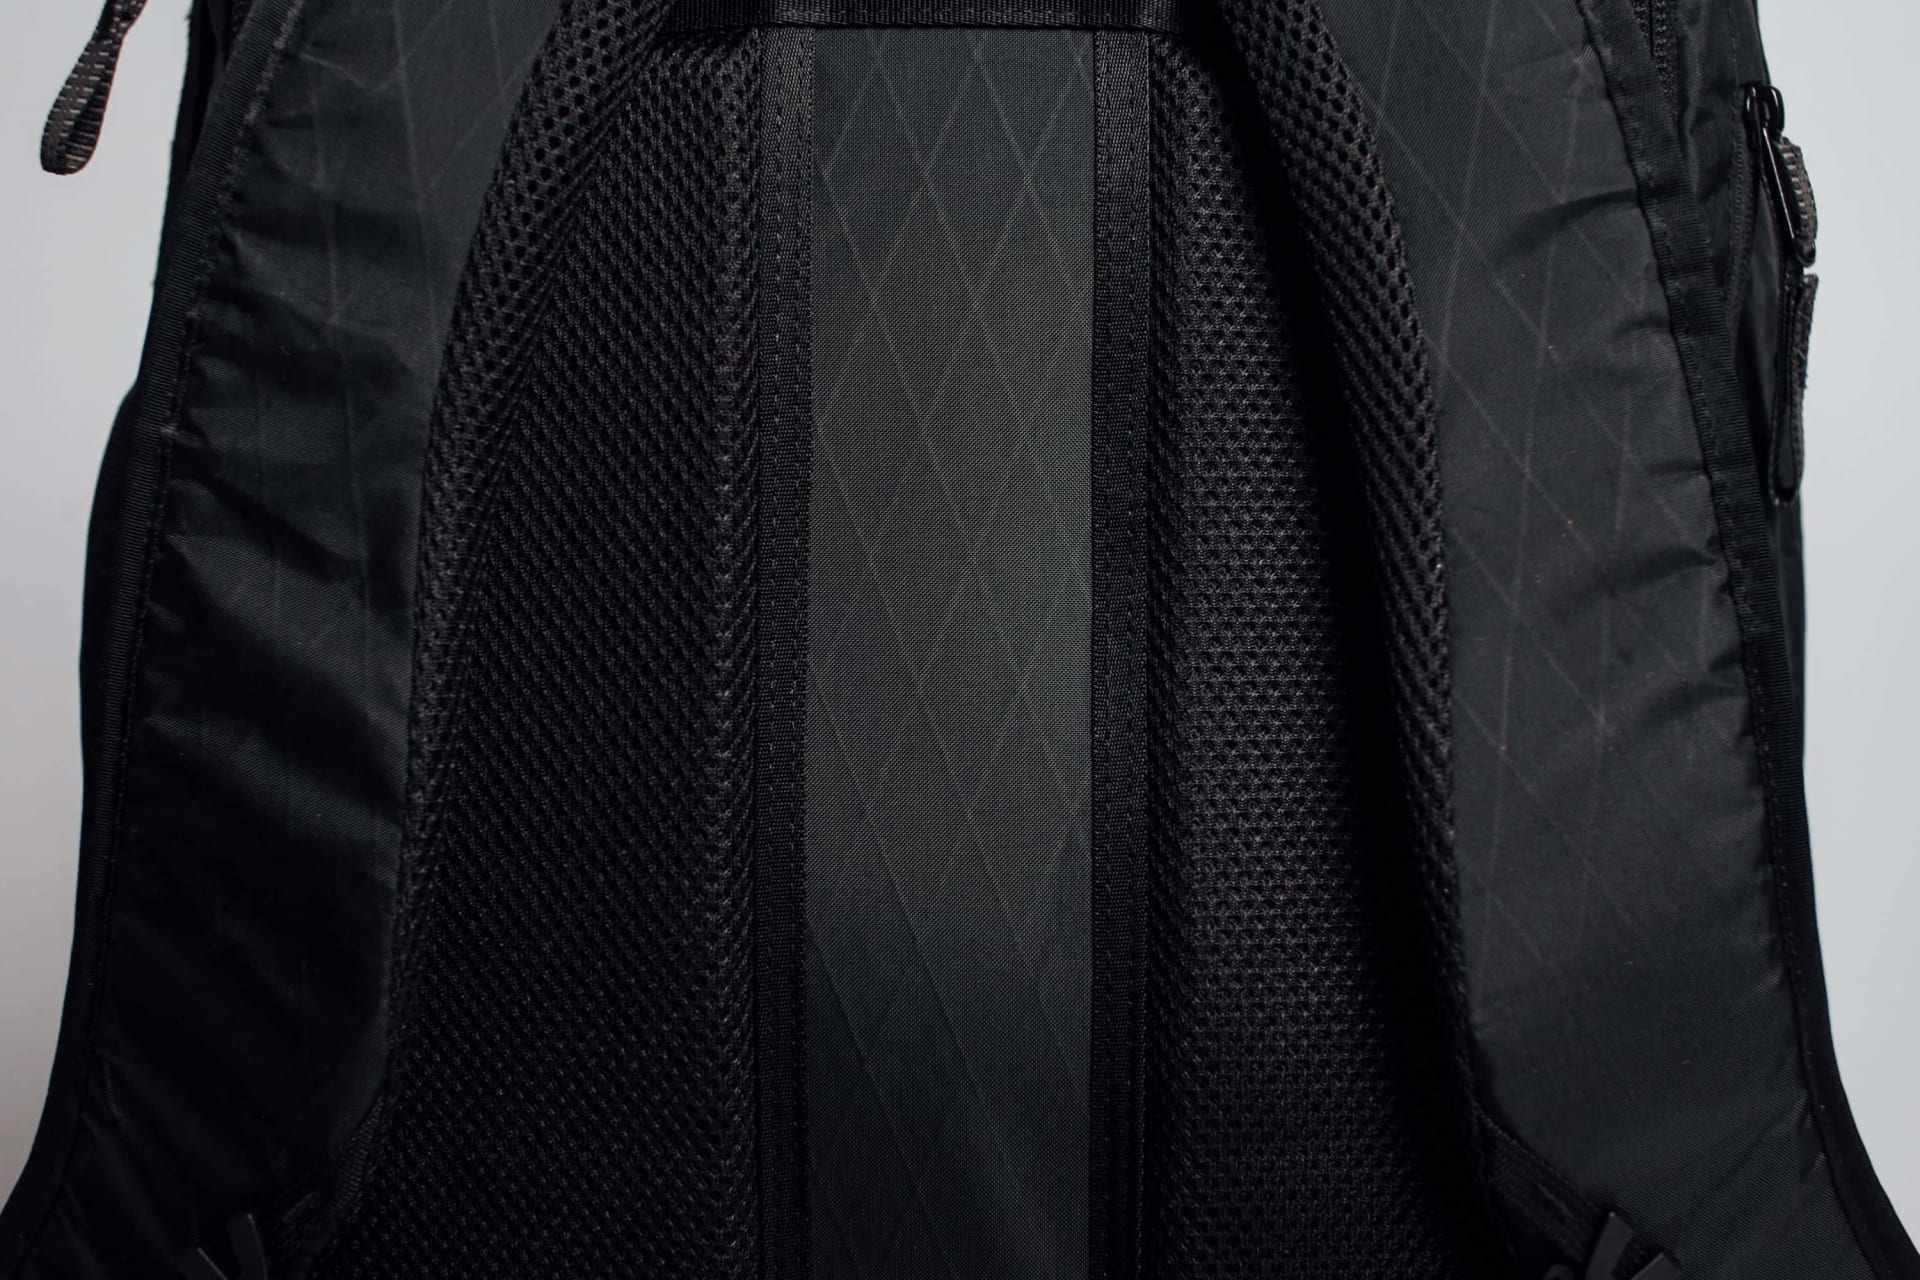 Ergonomic Padded Back Panel With Channel